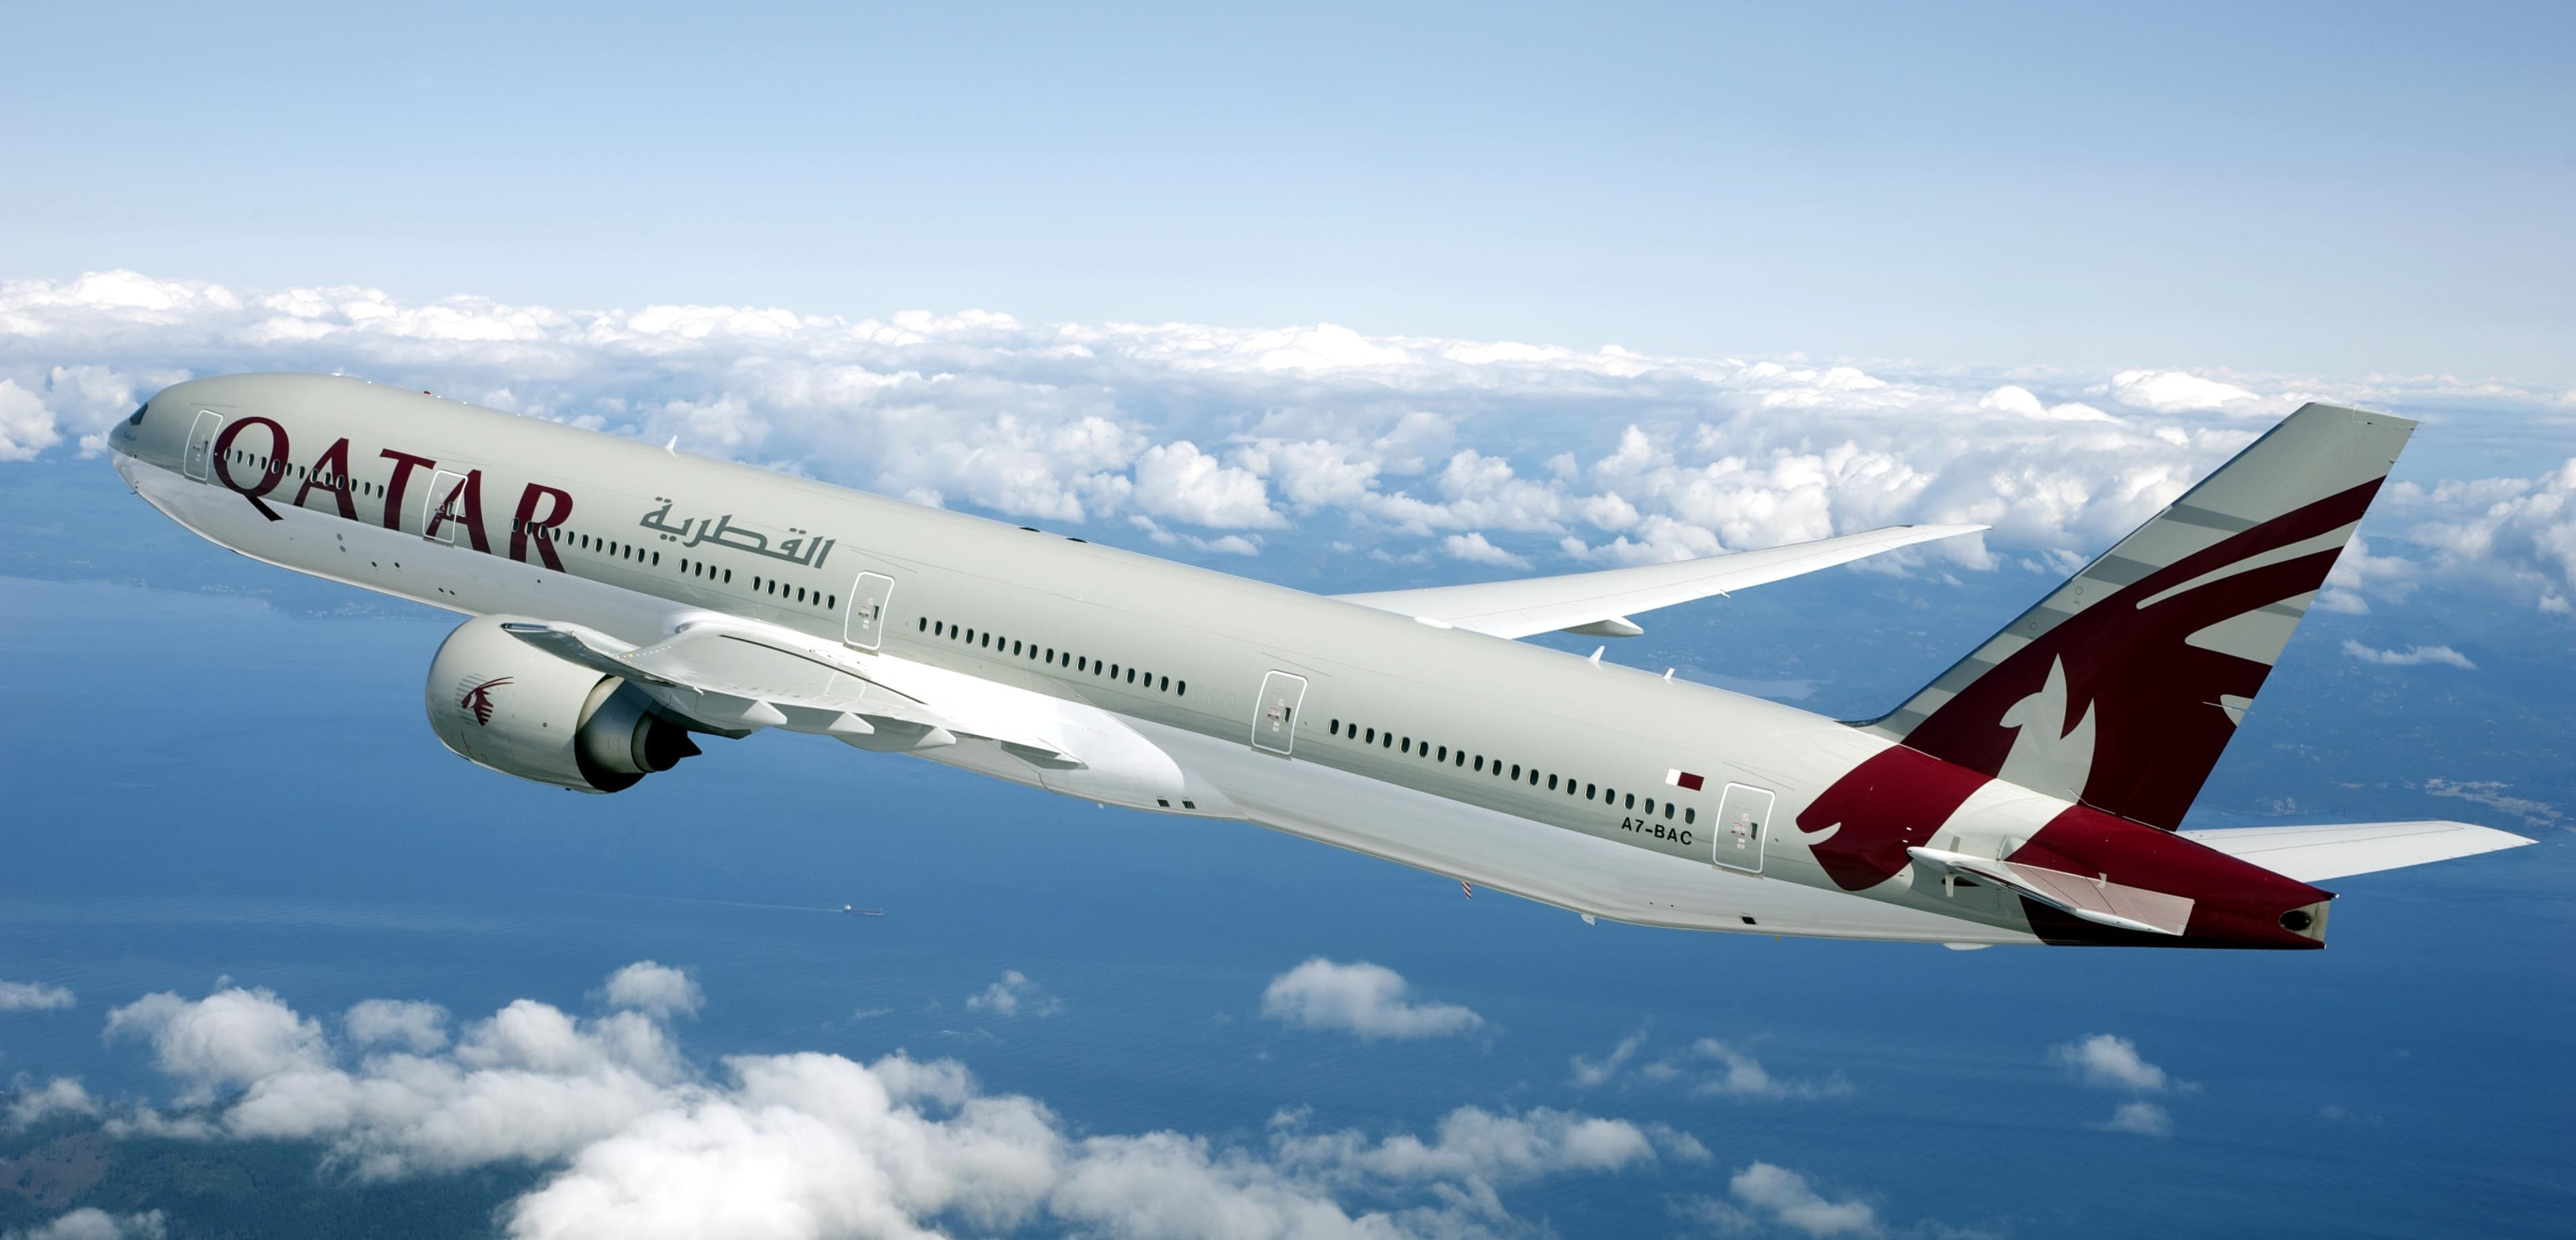 Qatar flights will boost investments